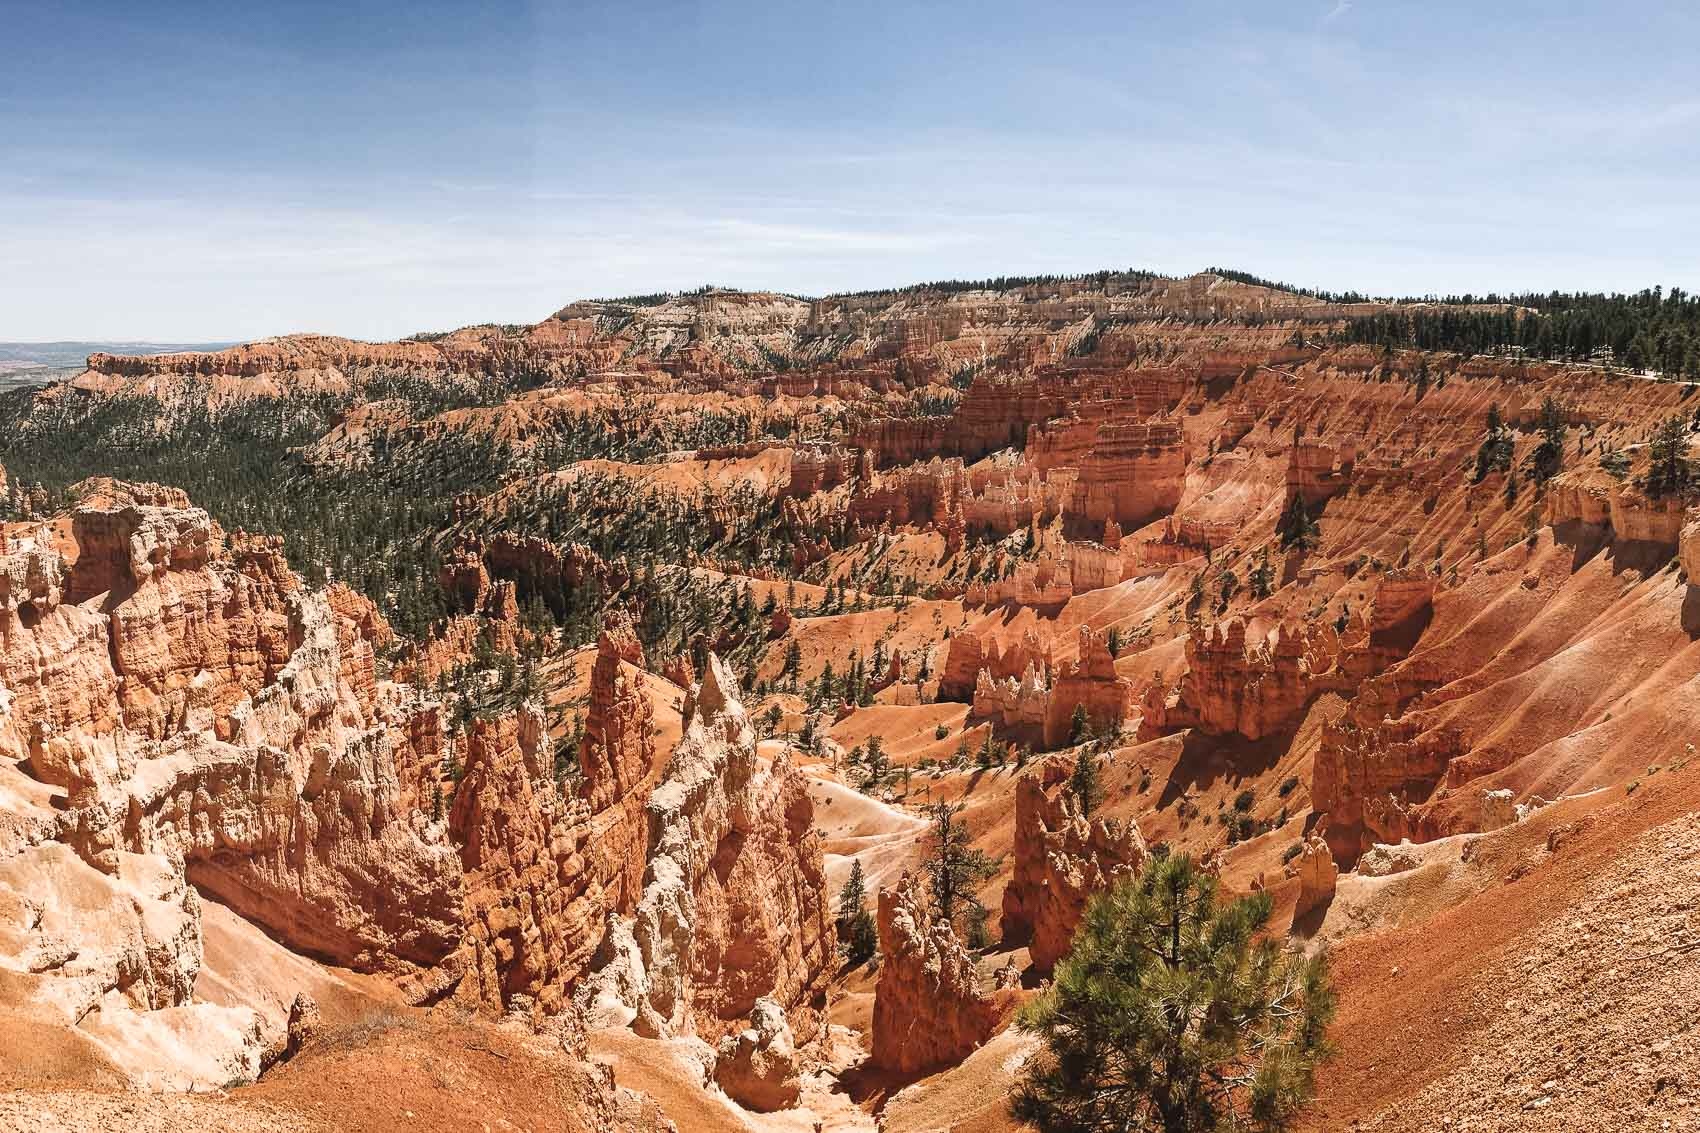 Bryce Canyon National Park in Utah on way to Best friends Animal Sanctuary - bucket list travel